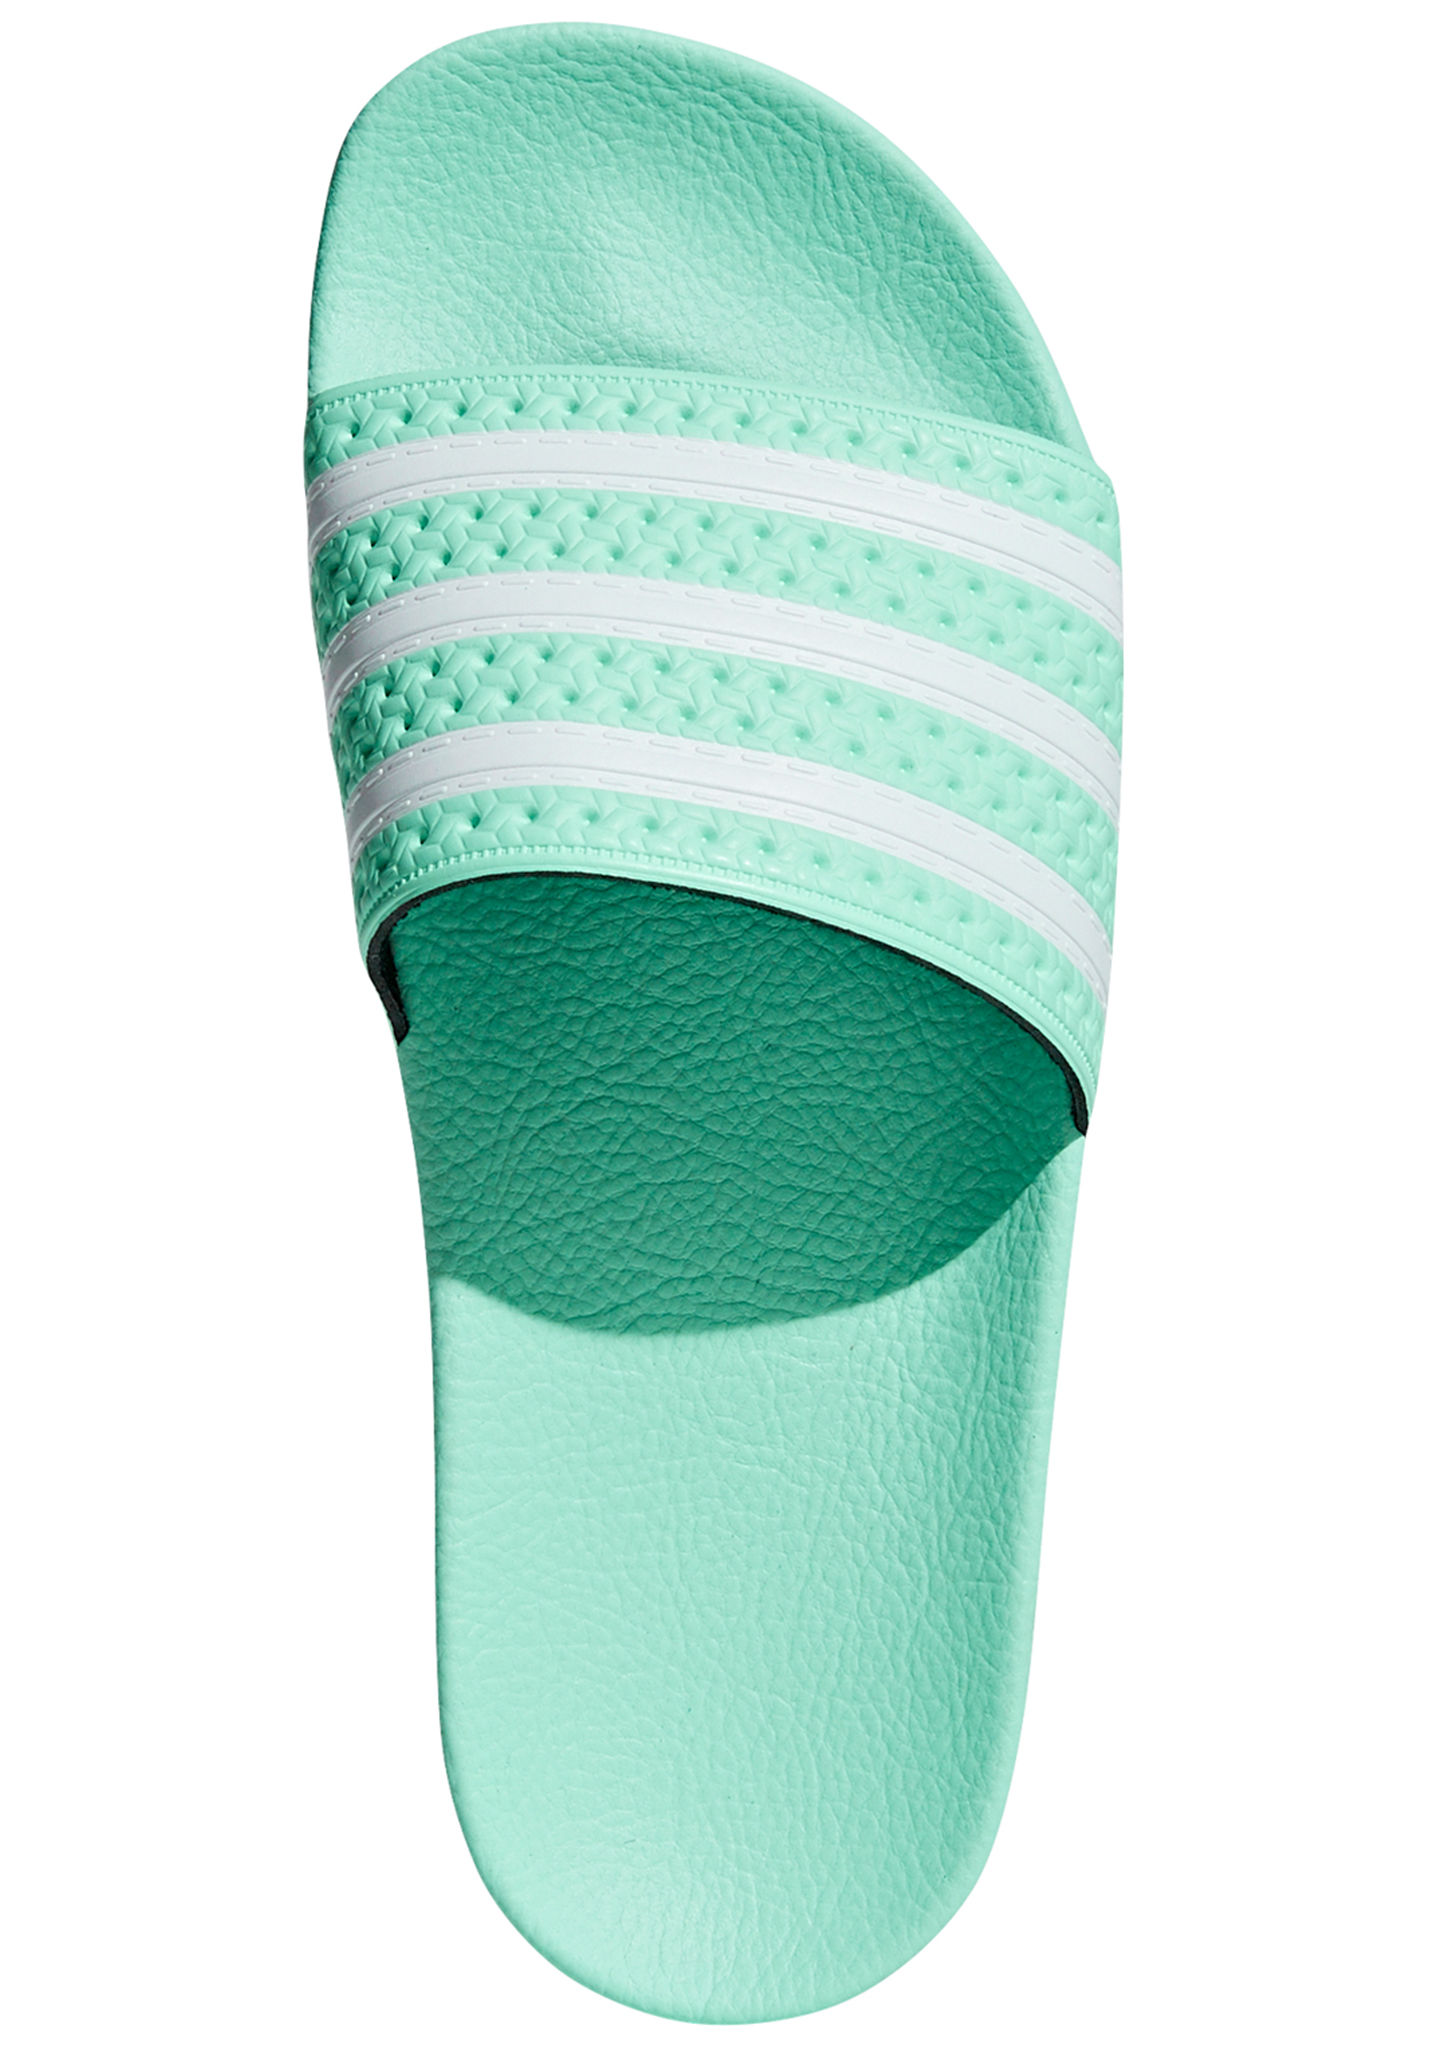 a8e850f26283 ADIDAS ORIGINALS Adilette - Sandals for Women - Green - Planet Sports